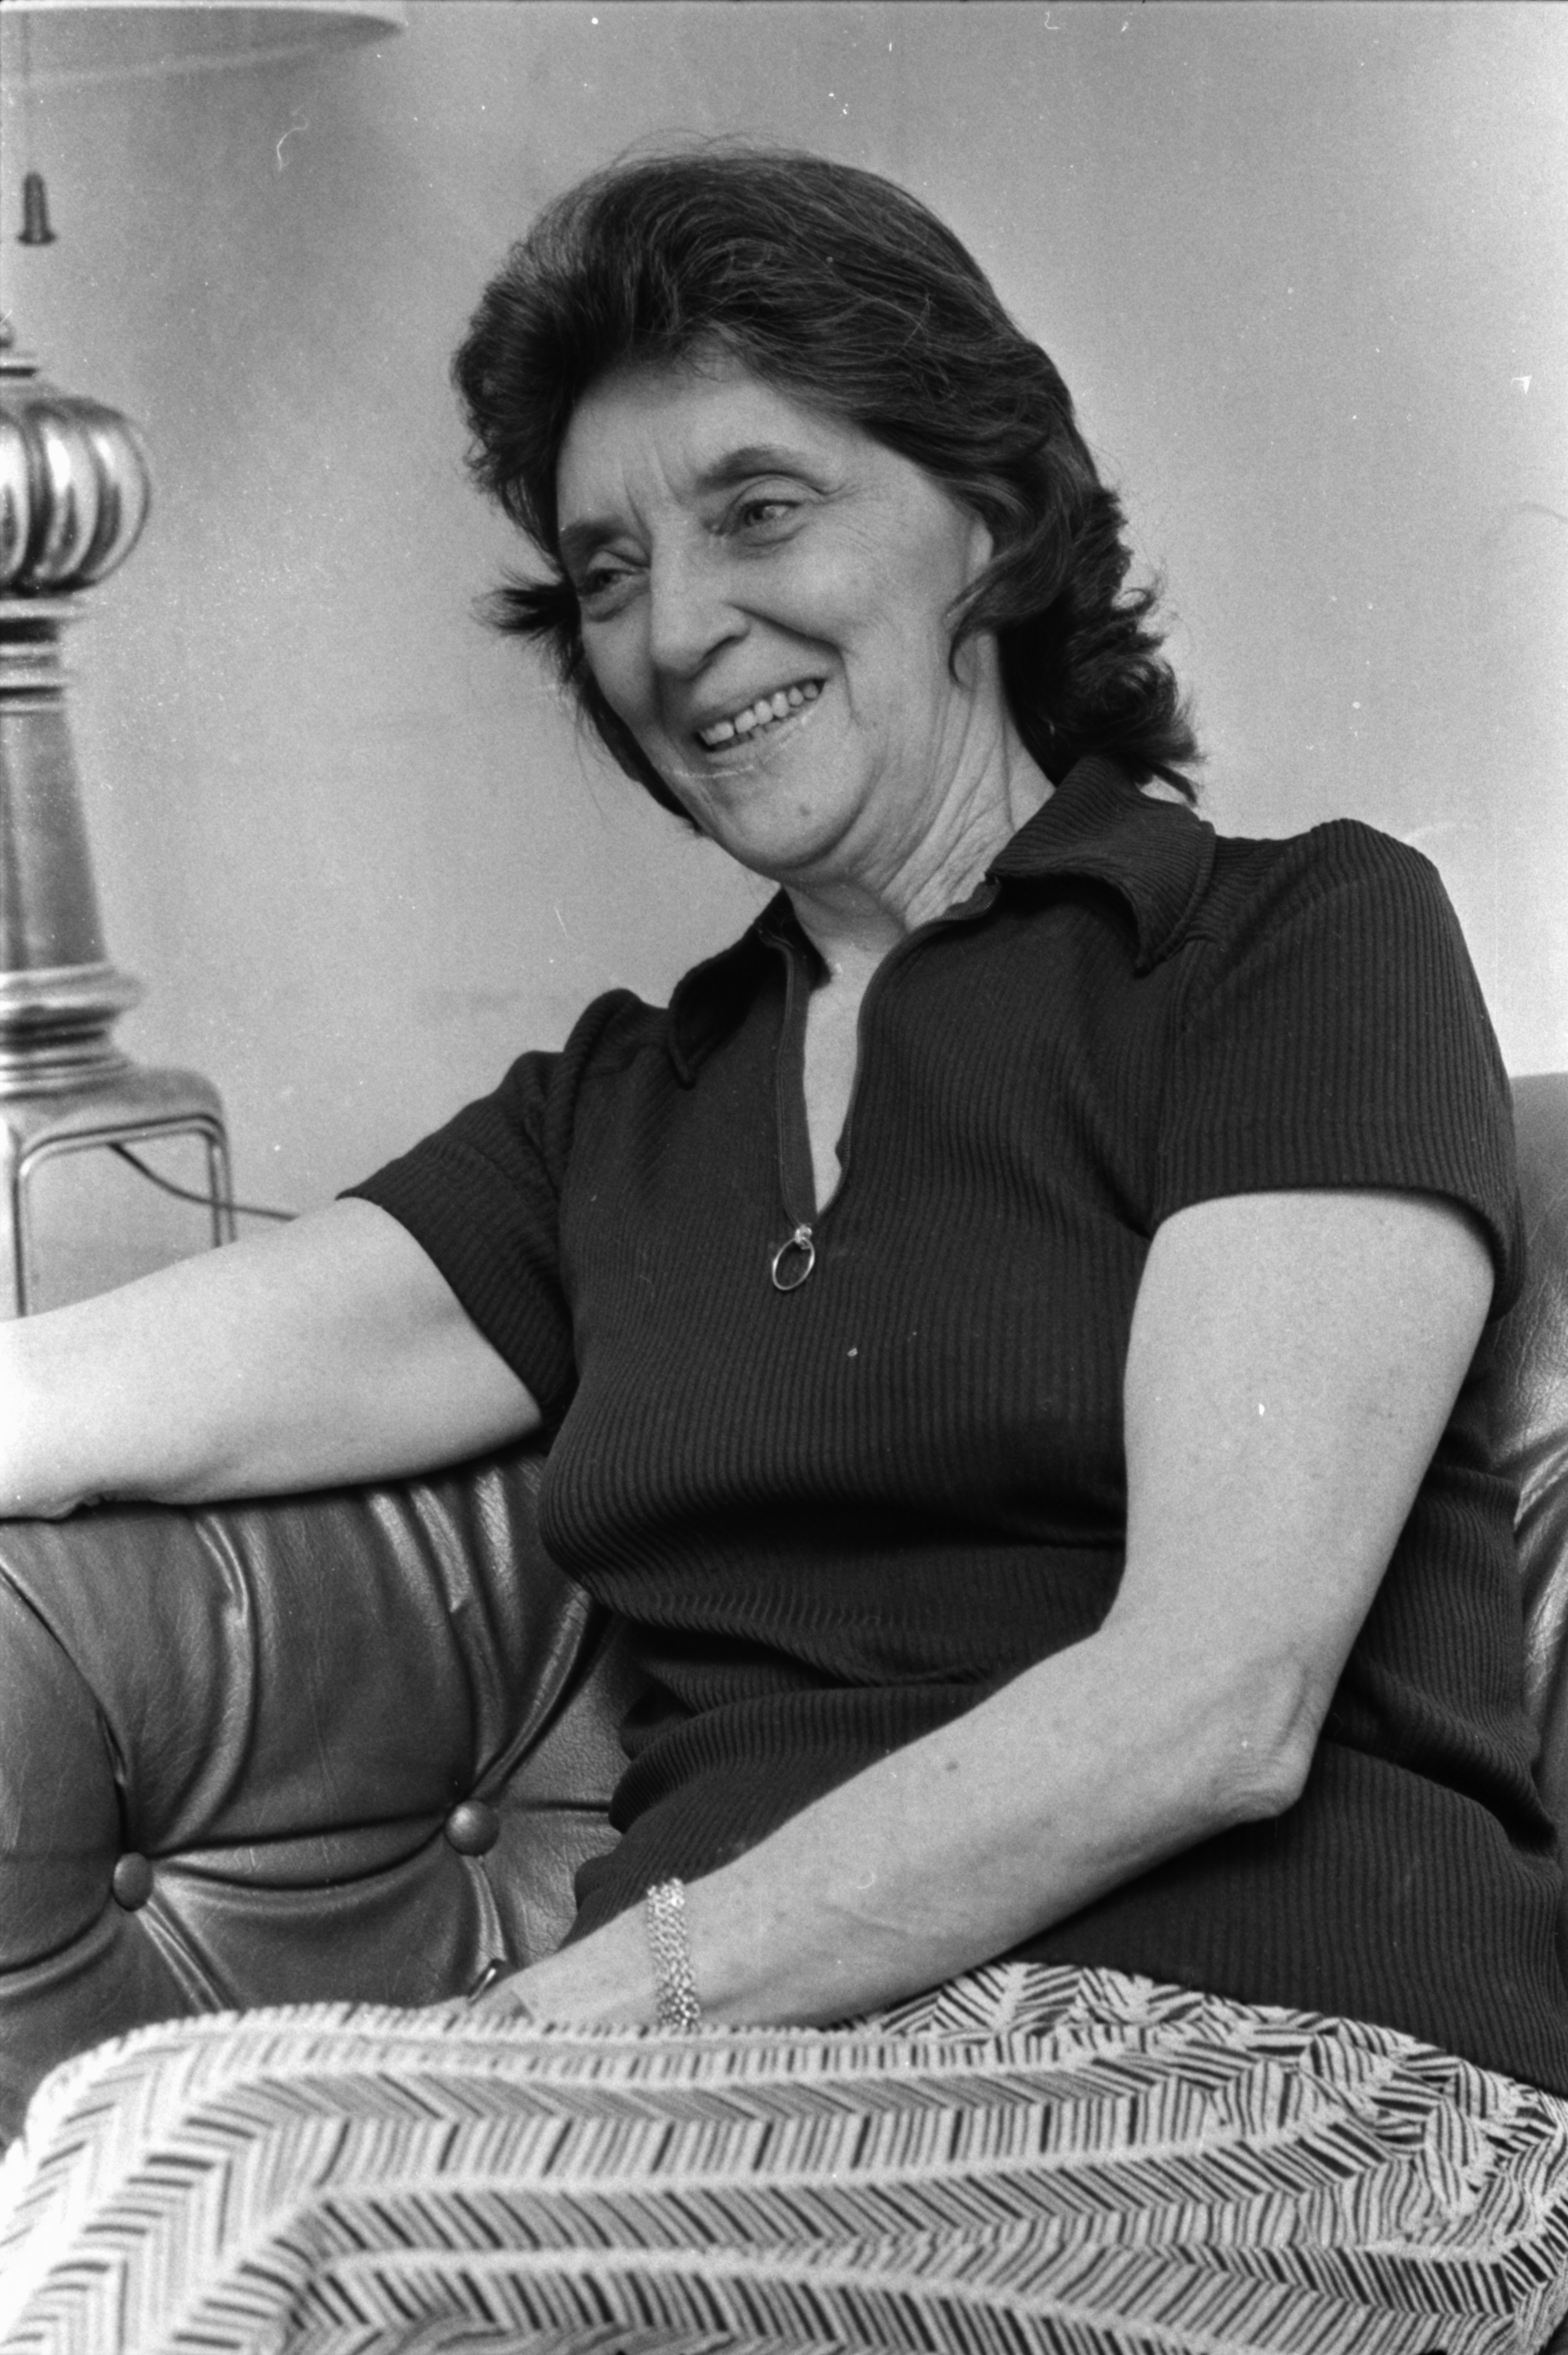 Virginia Warner, mother of POW Marine Captain James H. Warner, January 1973 image